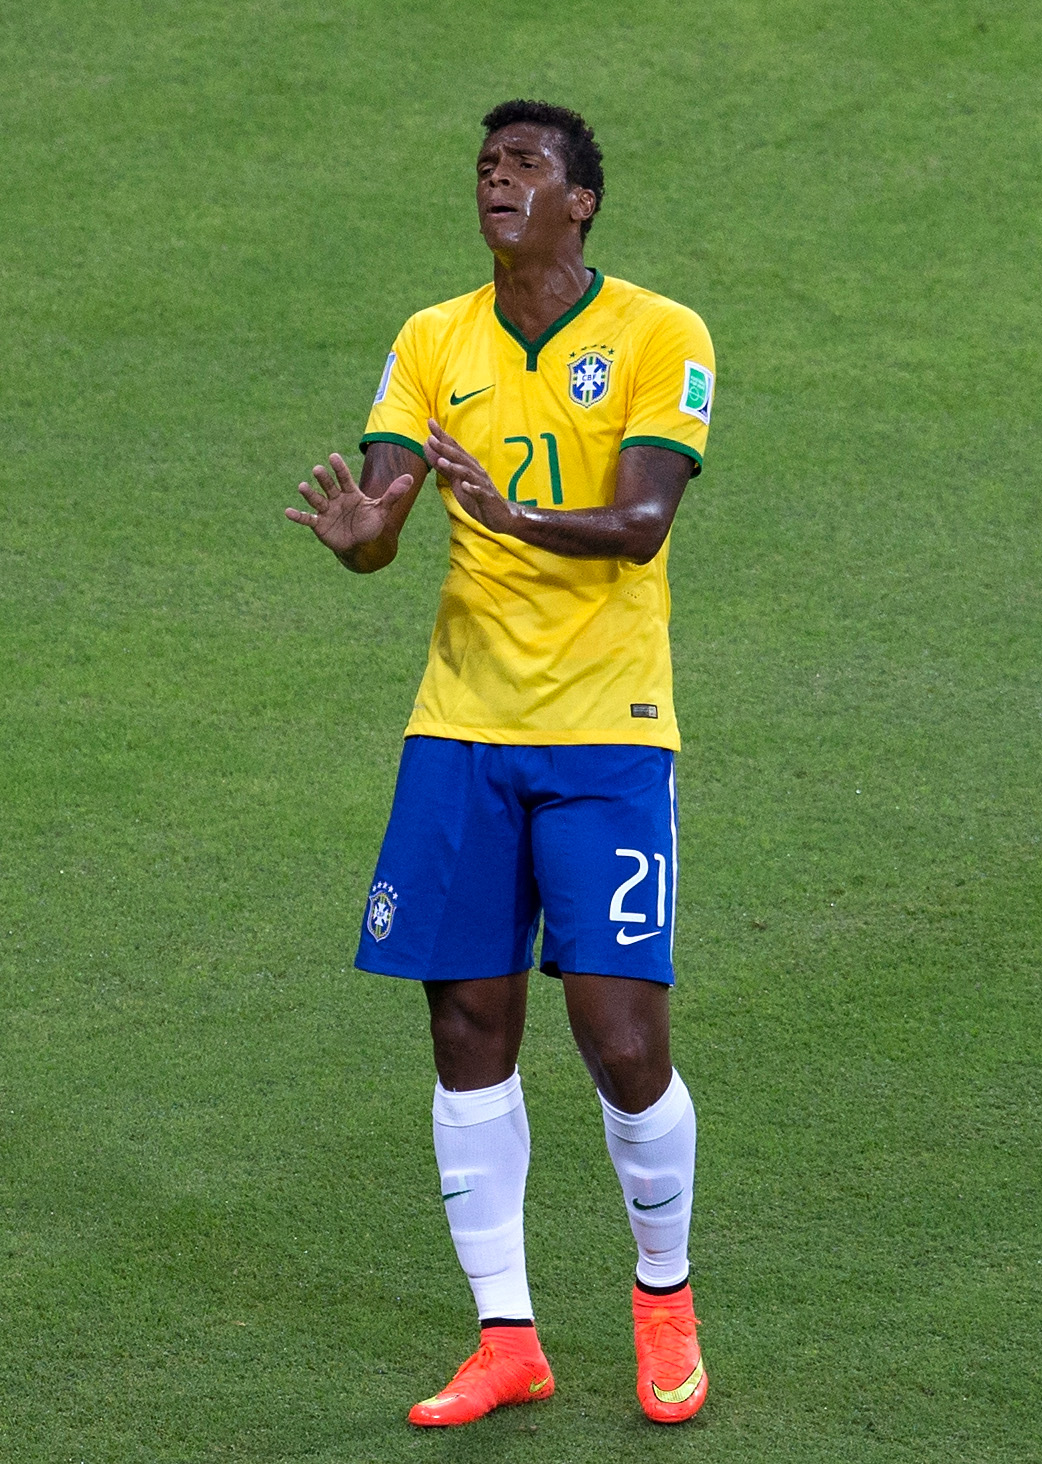 Jo playing for Brazil at the World Cup.